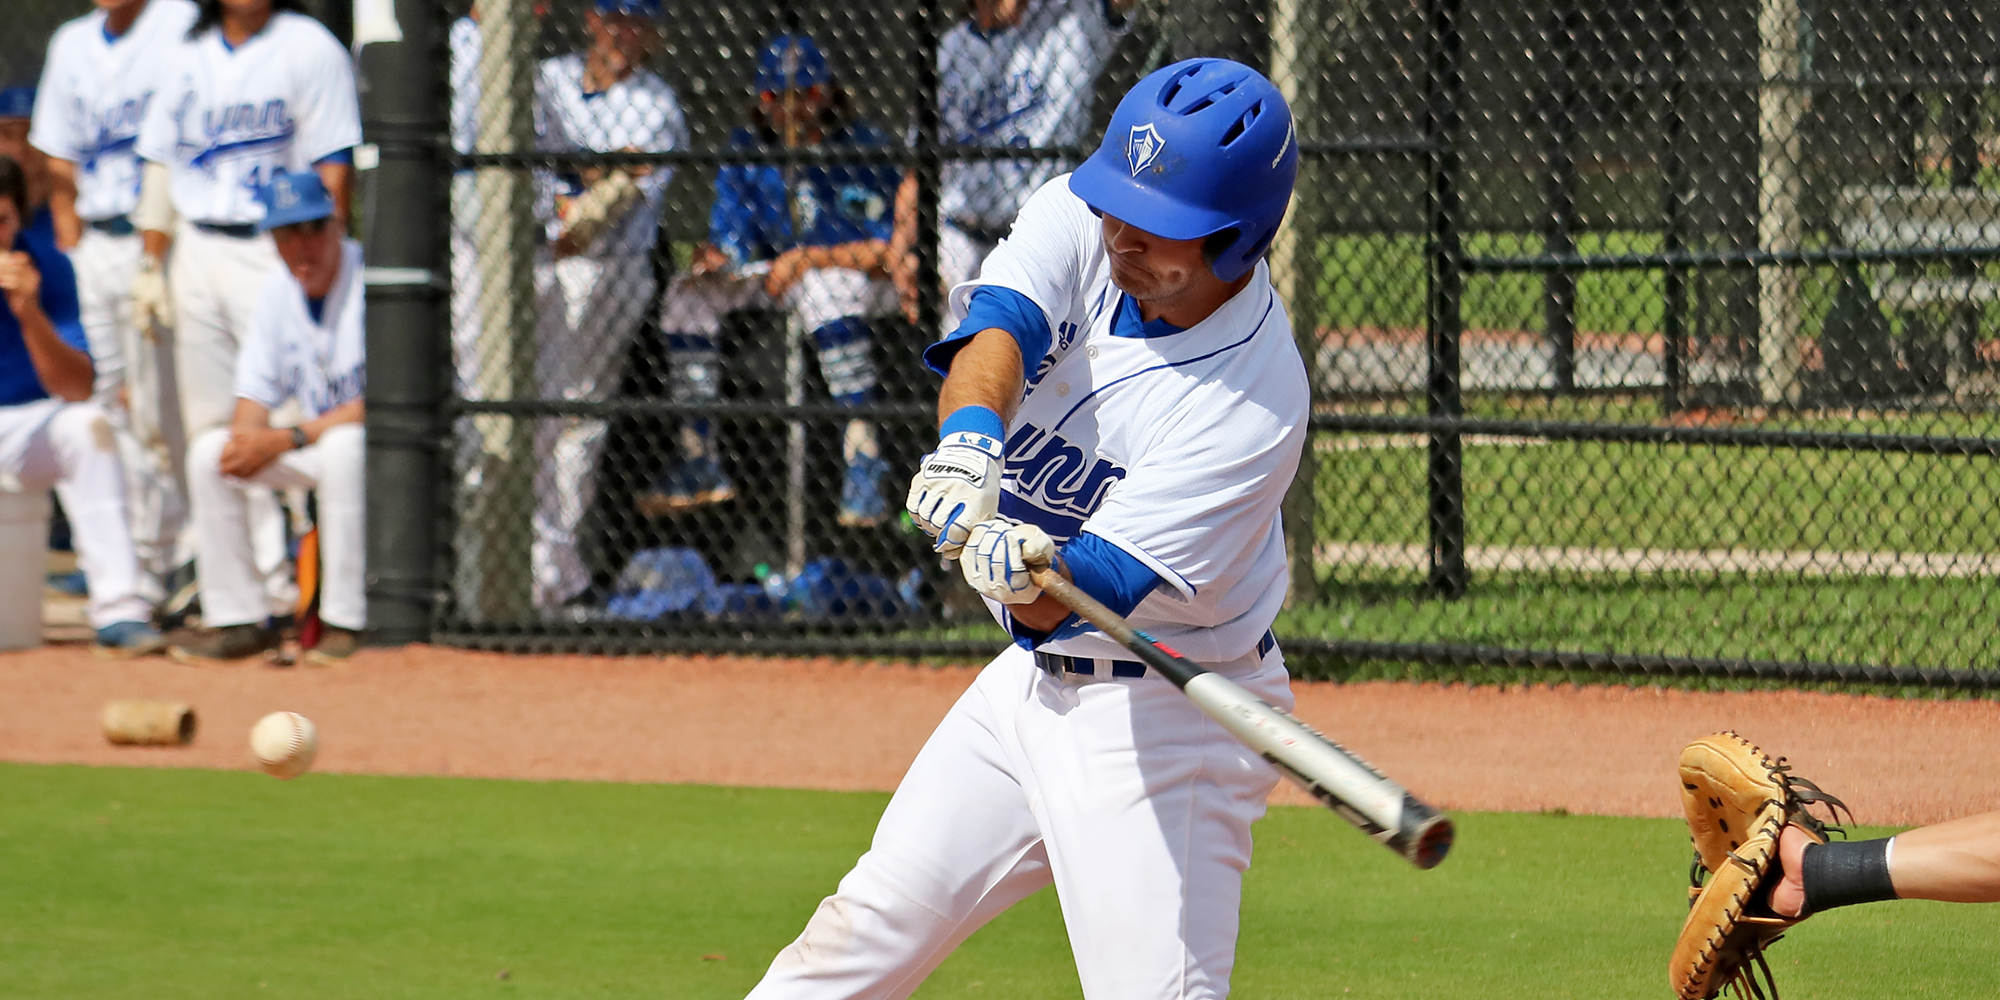 Baseball Speared by Tritons in Extra Innings